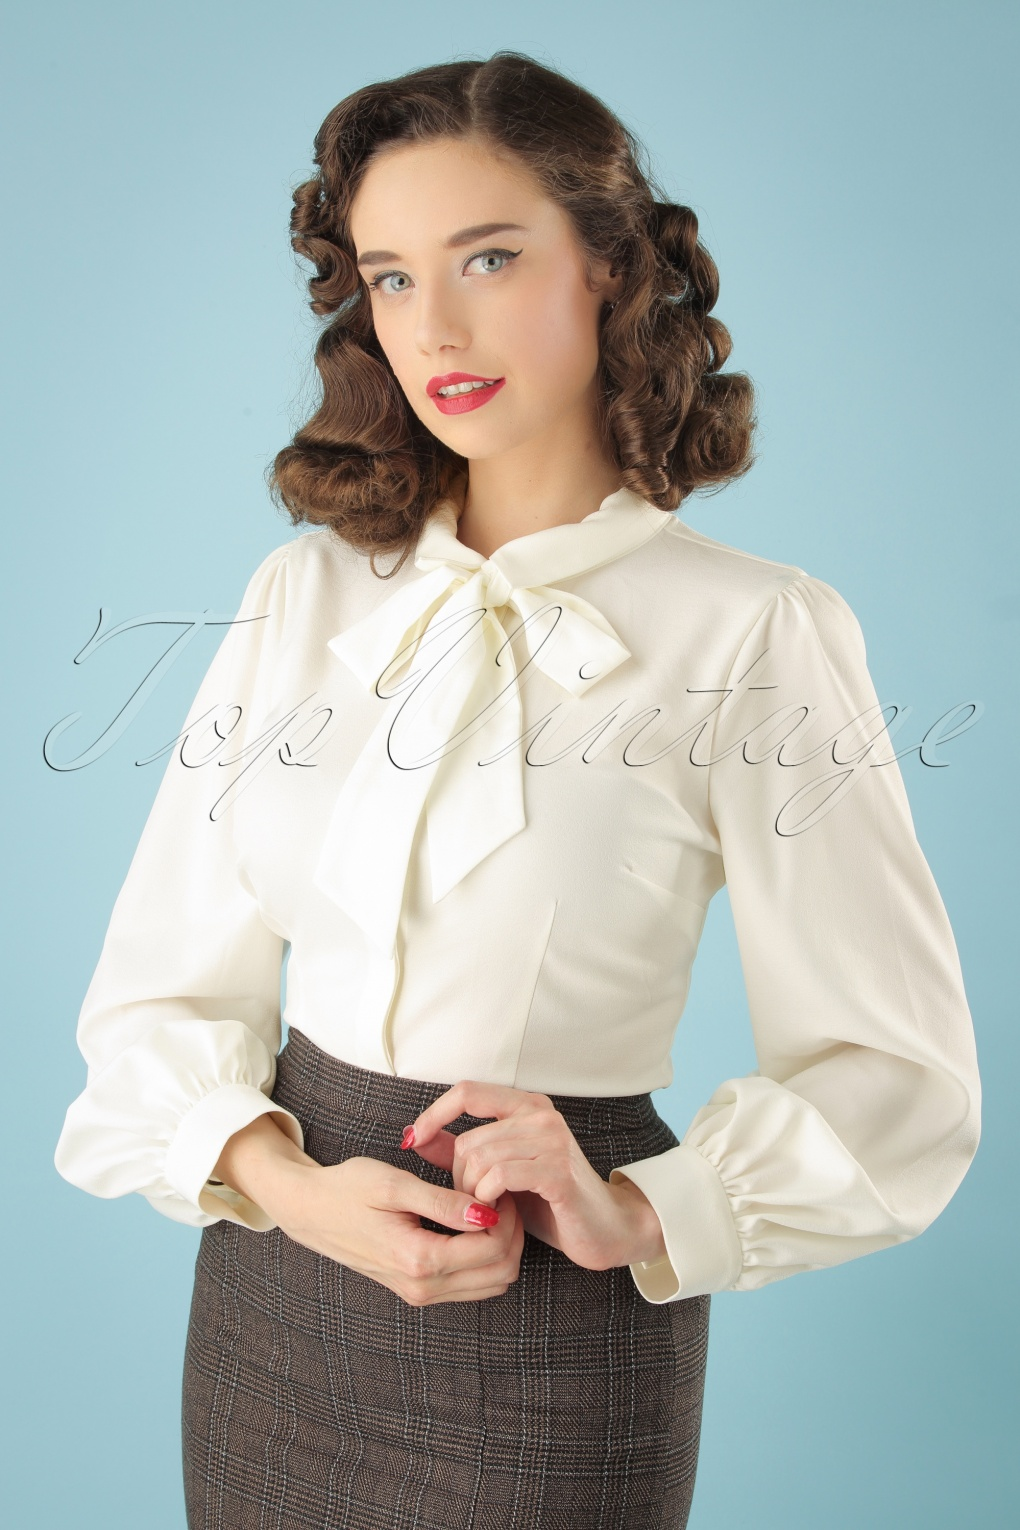 1940s Blouses, Shirts and Tops Fashion History 40s Beccy Blouse in Ivory £36.73 AT vintagedancer.com